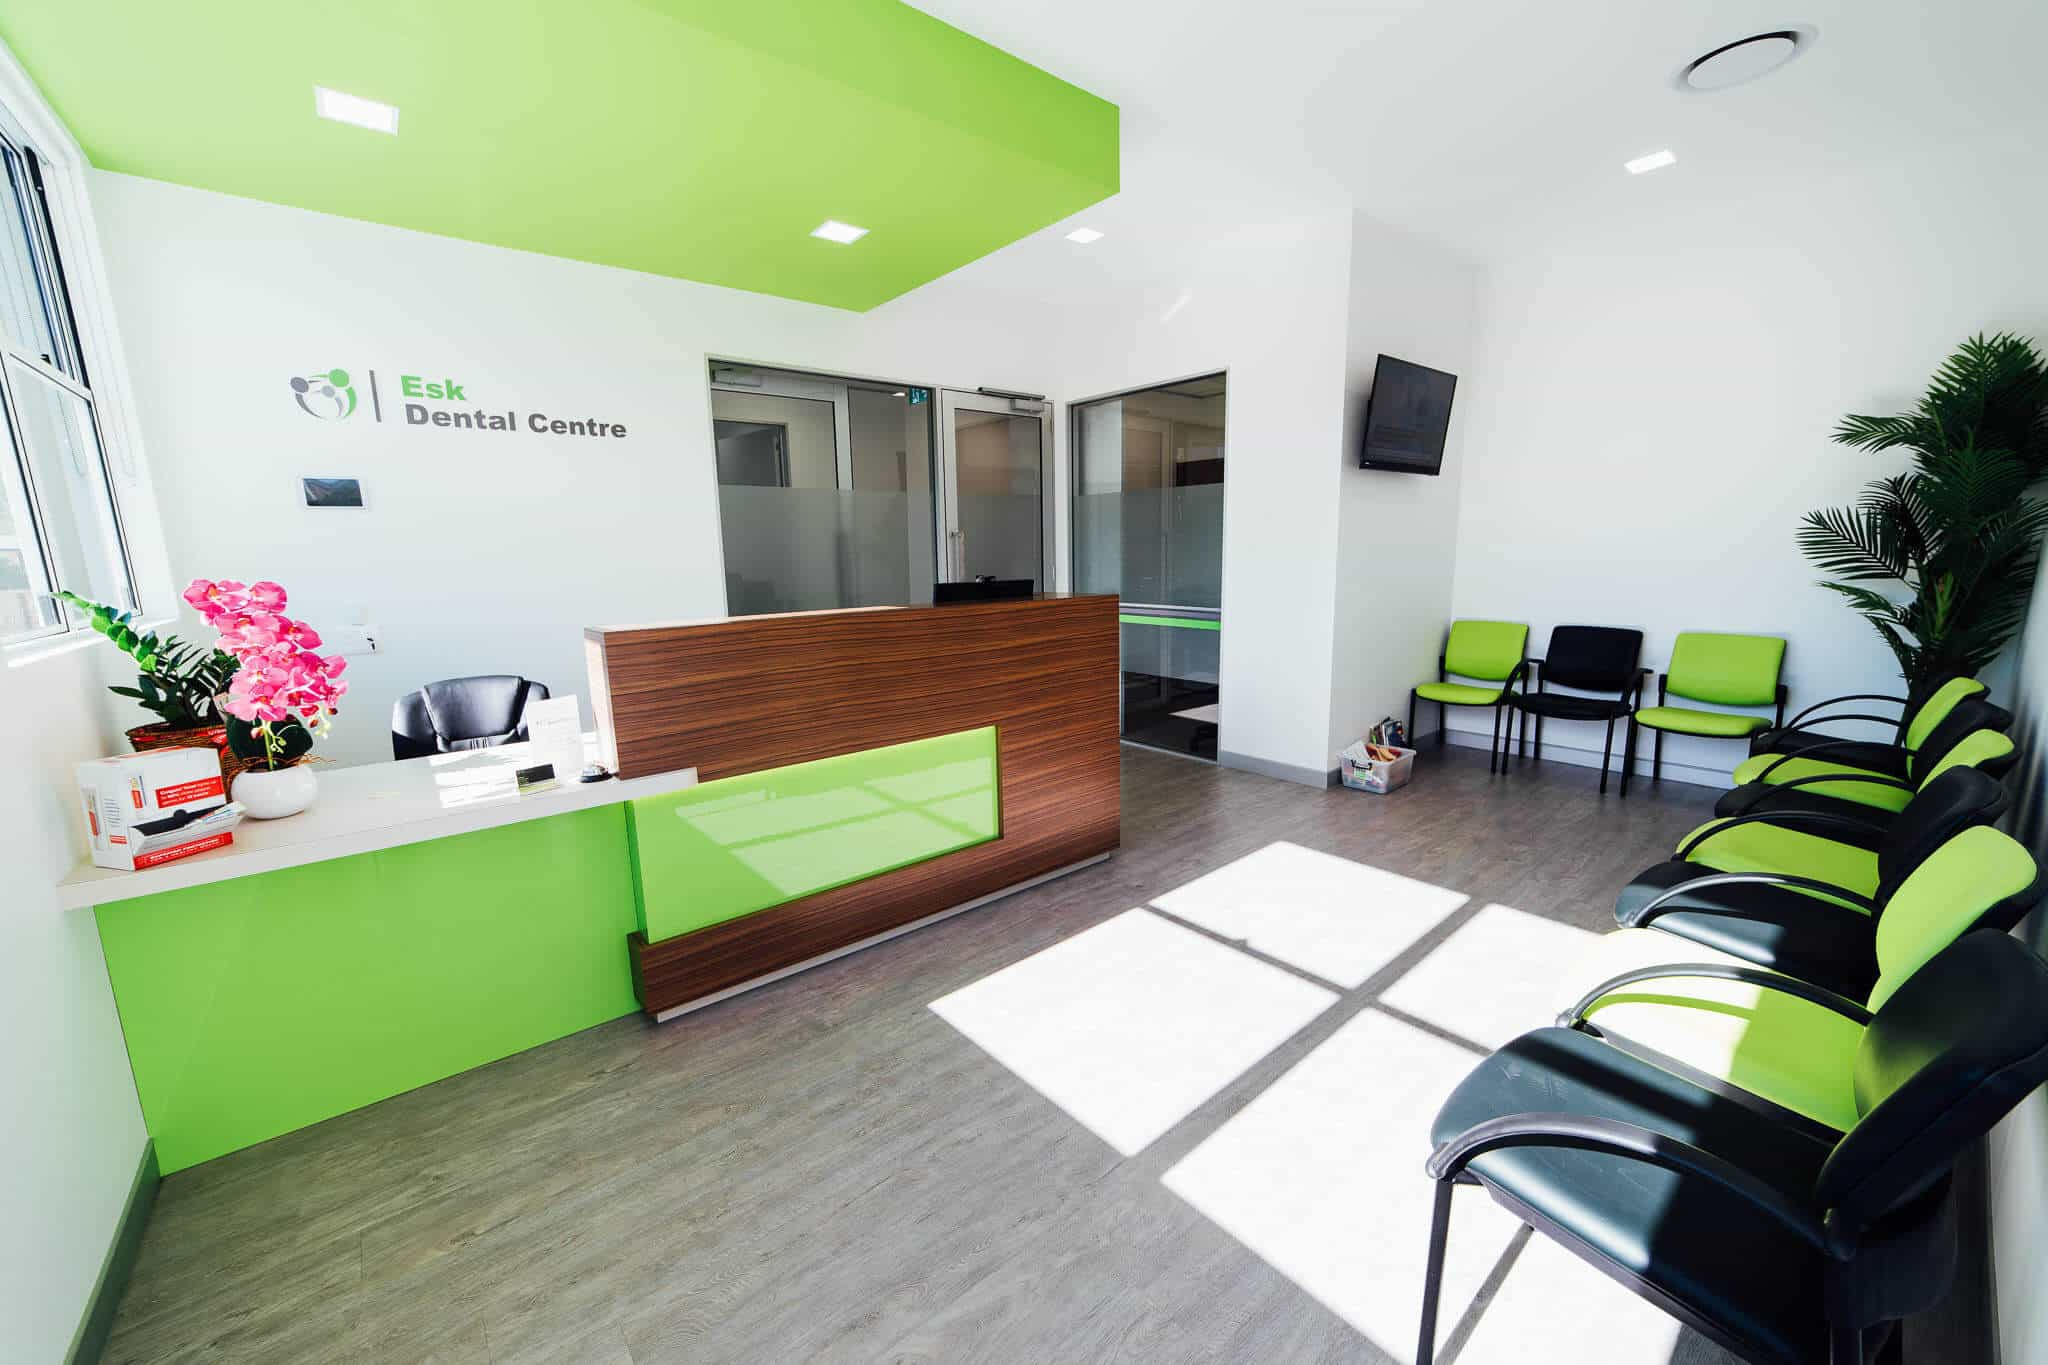 Esk Dental fitout - reception